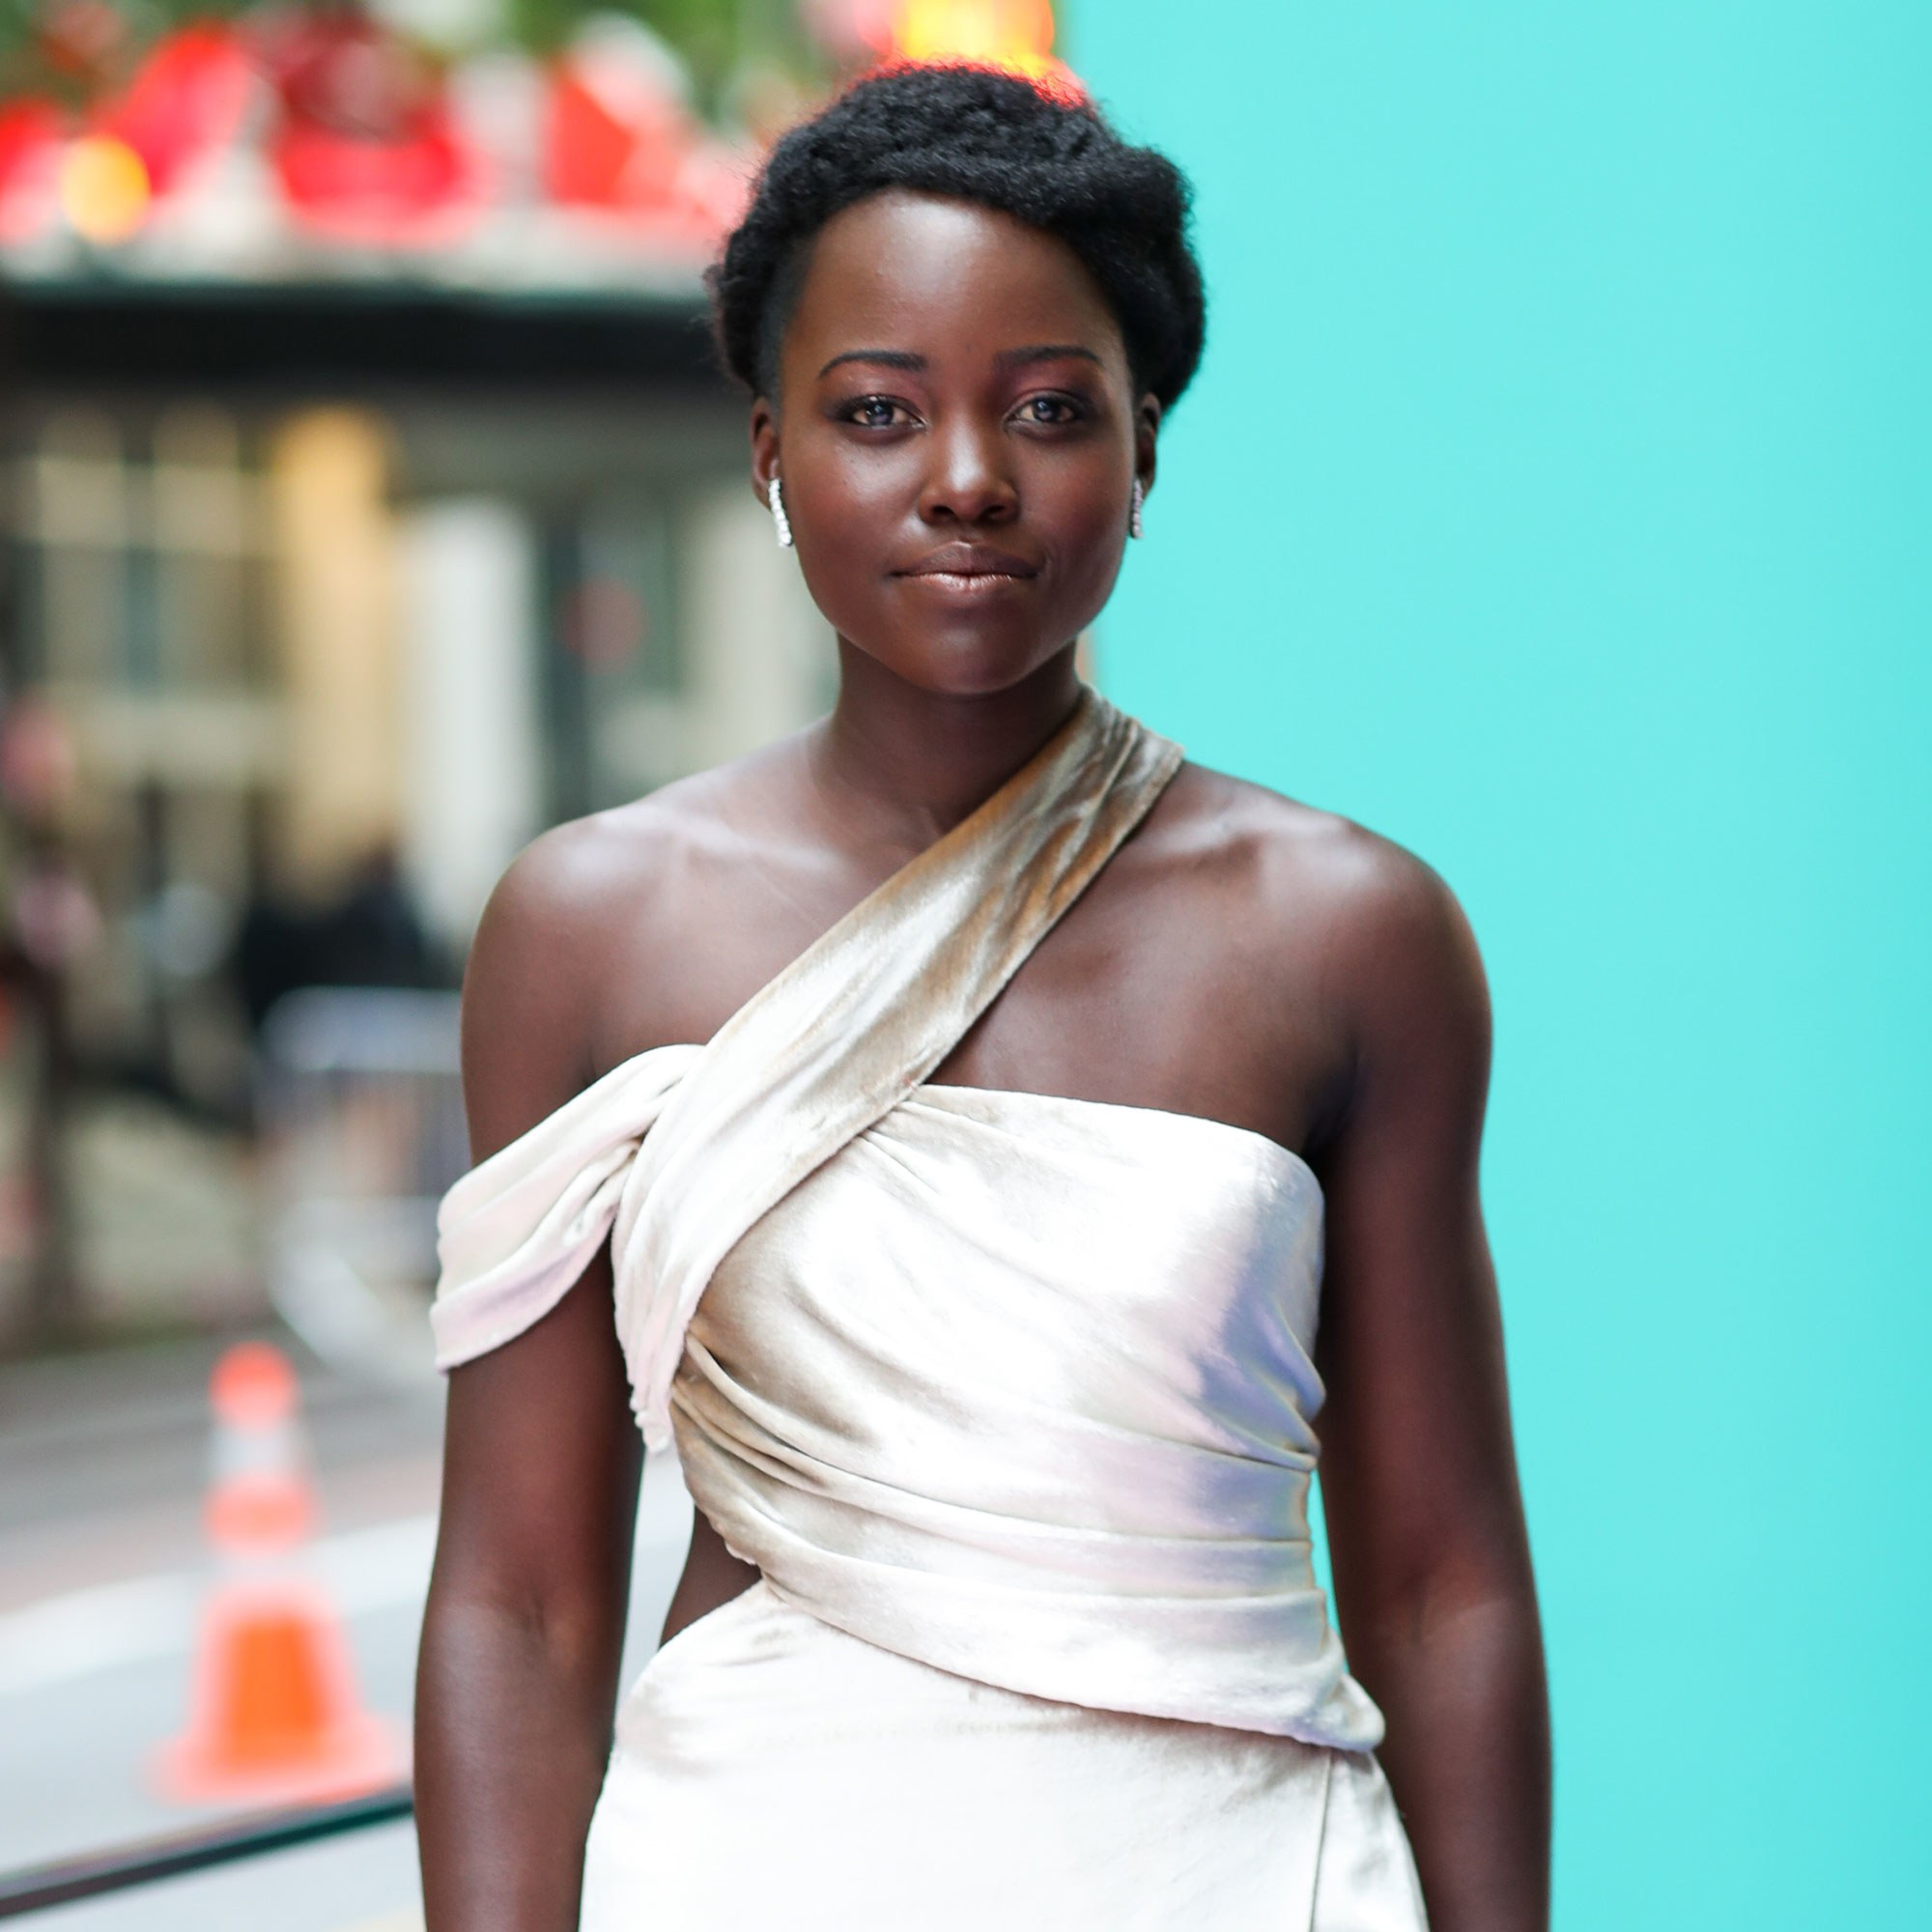 LUPITA NYONG'O CALLS OUT WOMEN MAGAZINE, GRAZIA, FOR EDITING OFF HER NATURAL HAIR